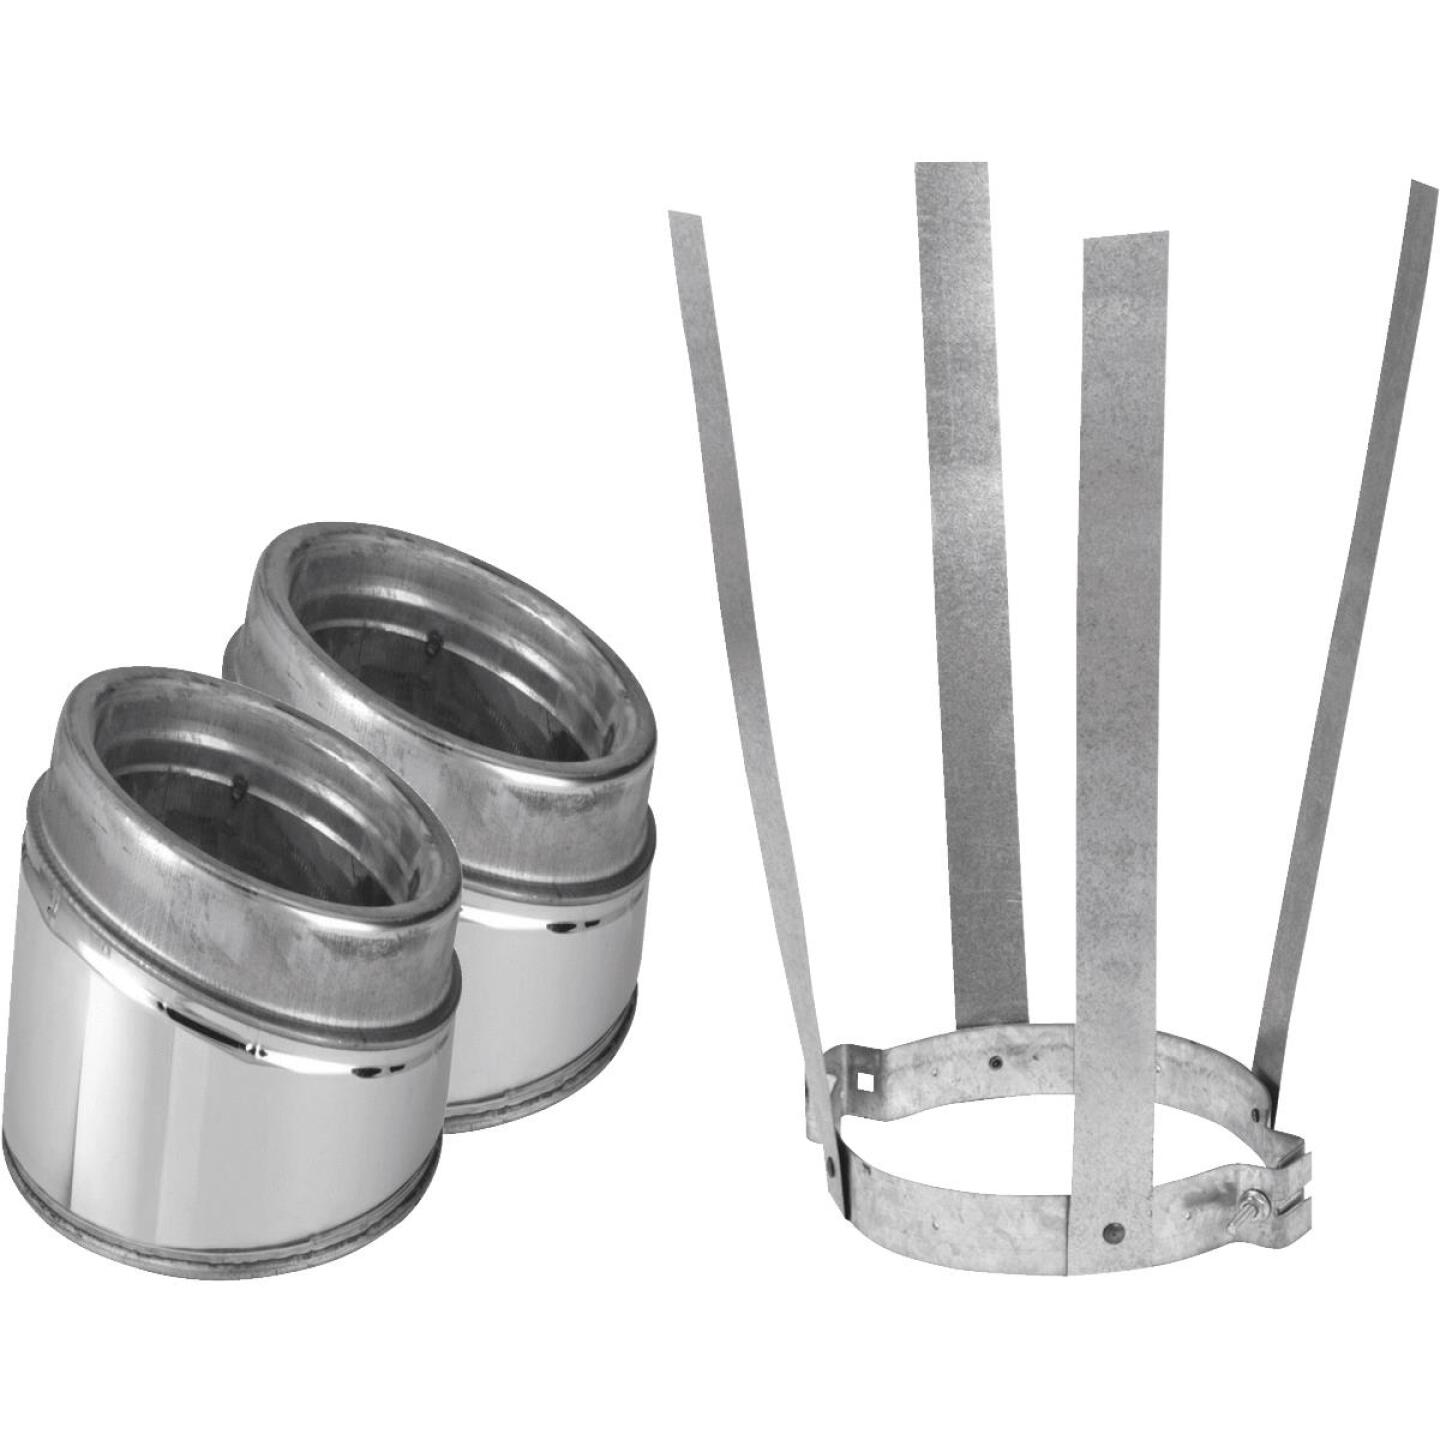 SELKIRK Sure-Temp 30 Degree 6 In. Stainless Steel Insulated Elbow Kit Image 1